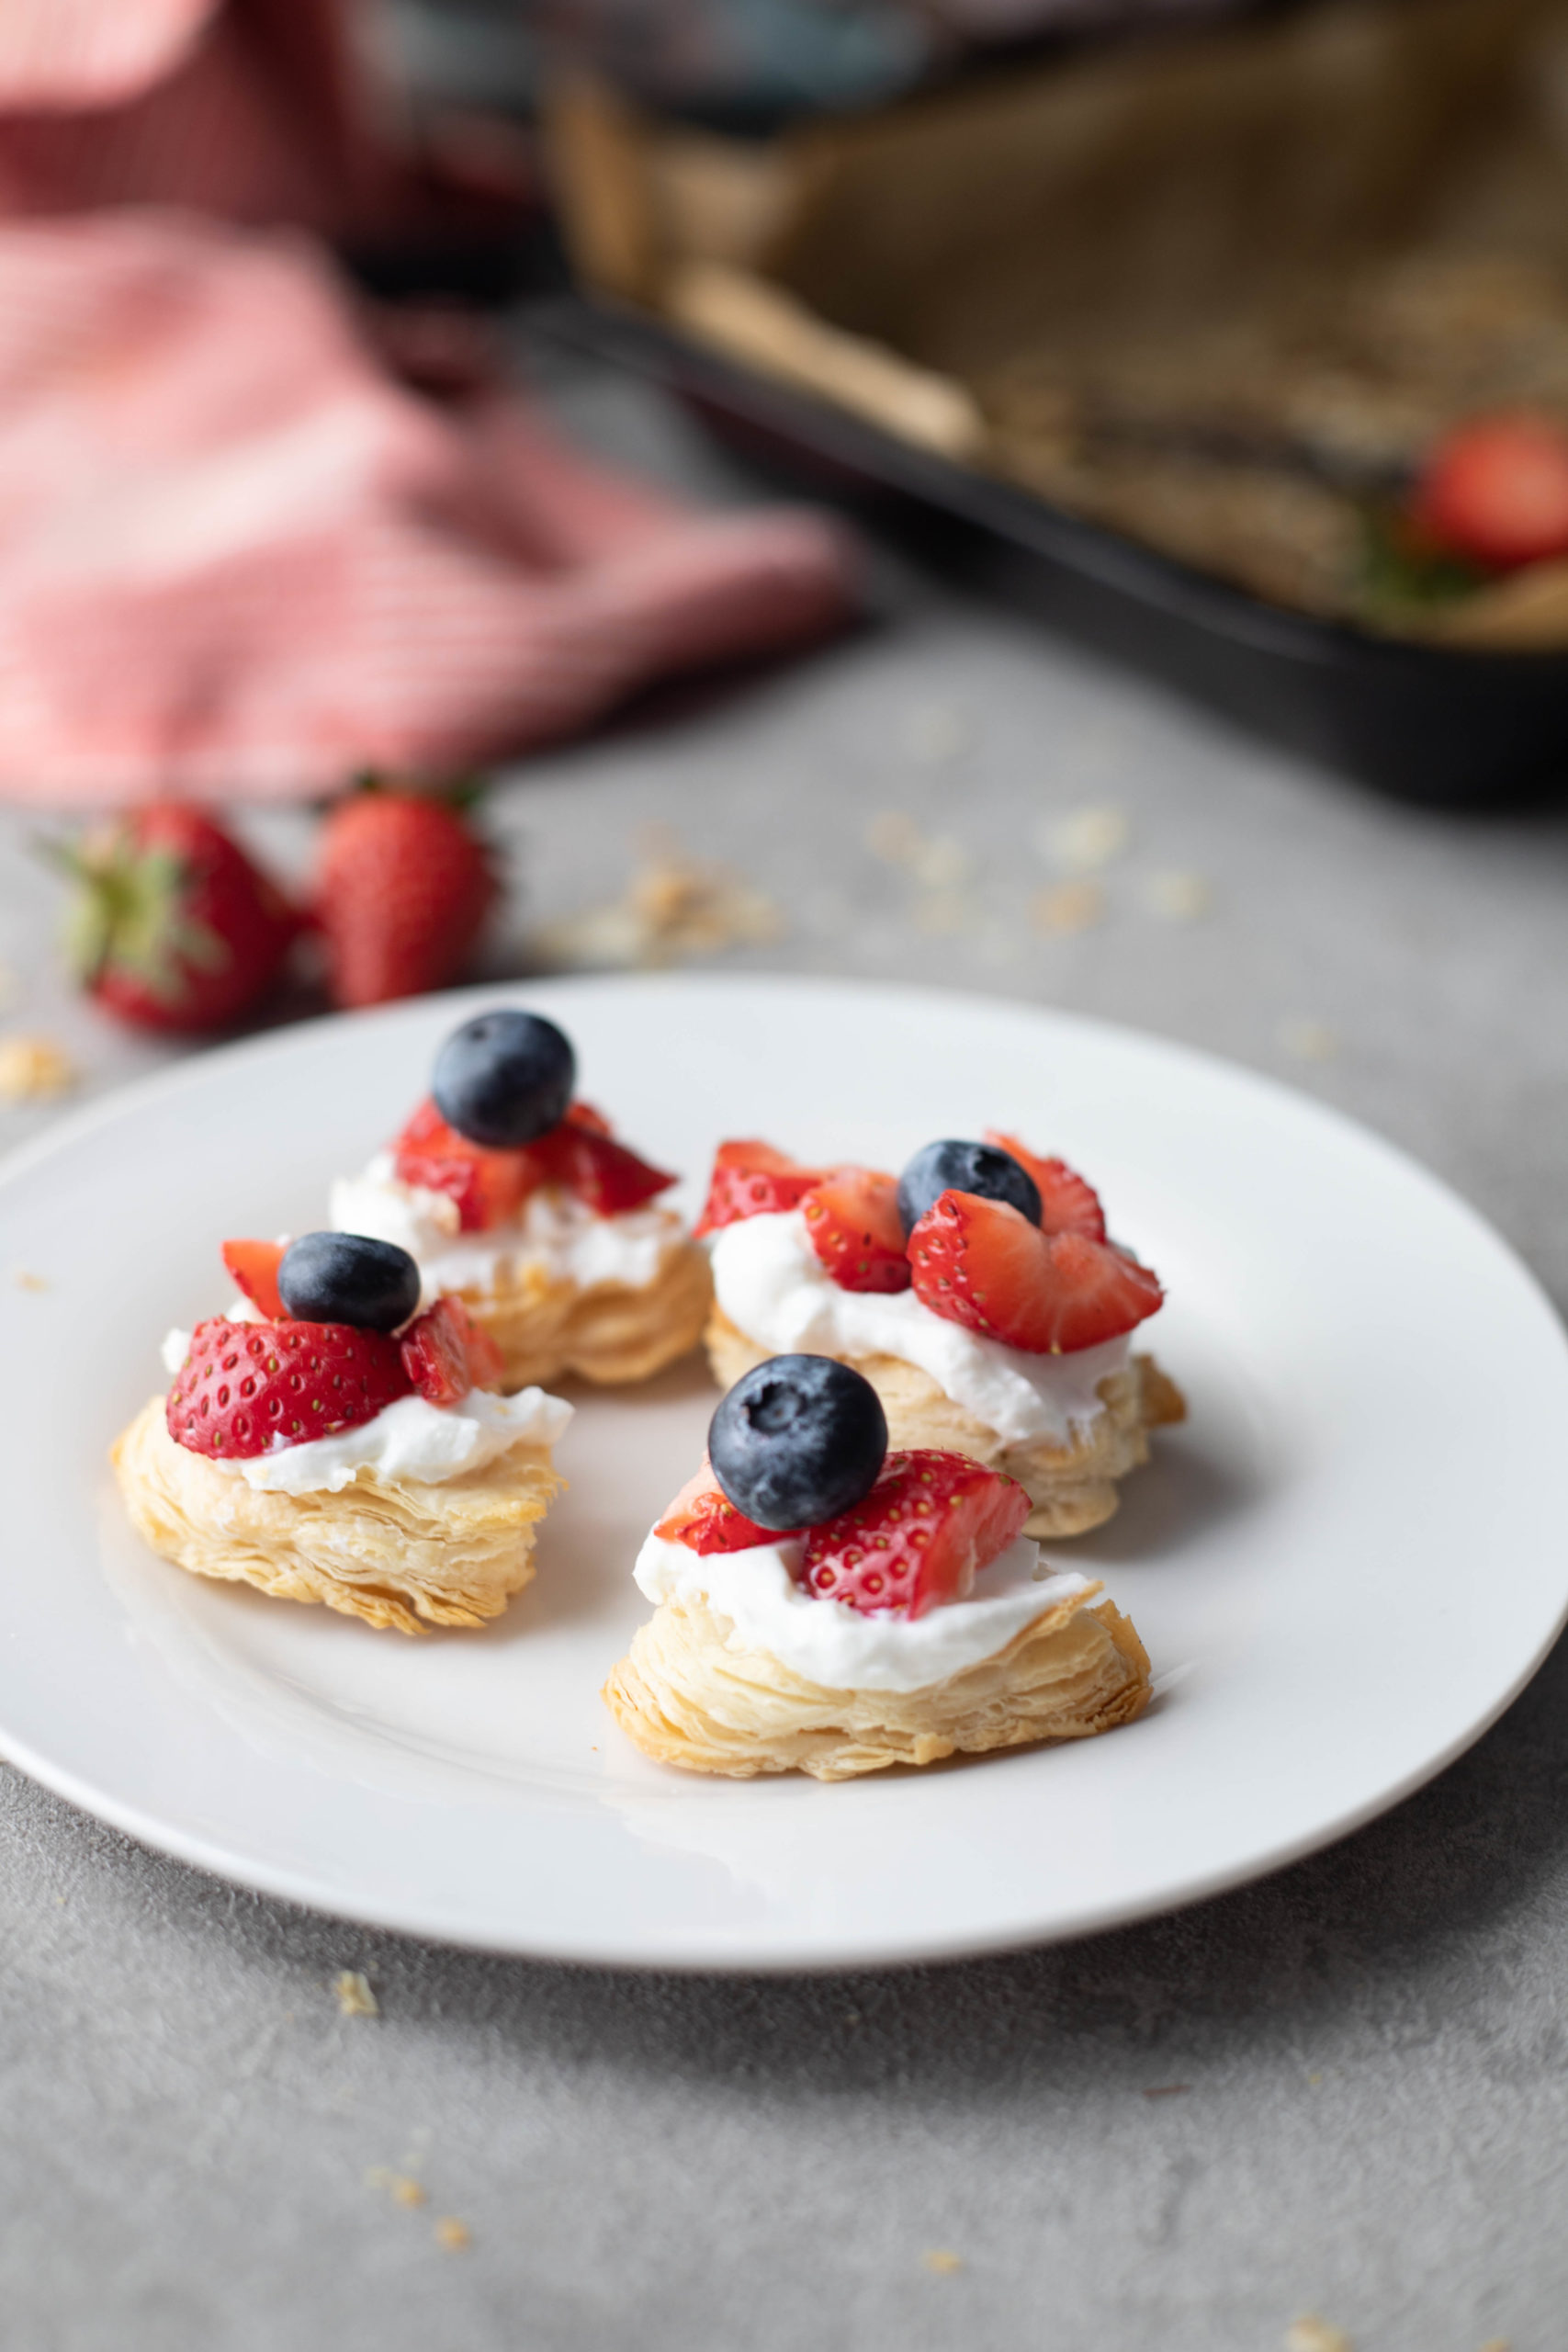 puff-pastry-bites with cream strawberries and blueberries